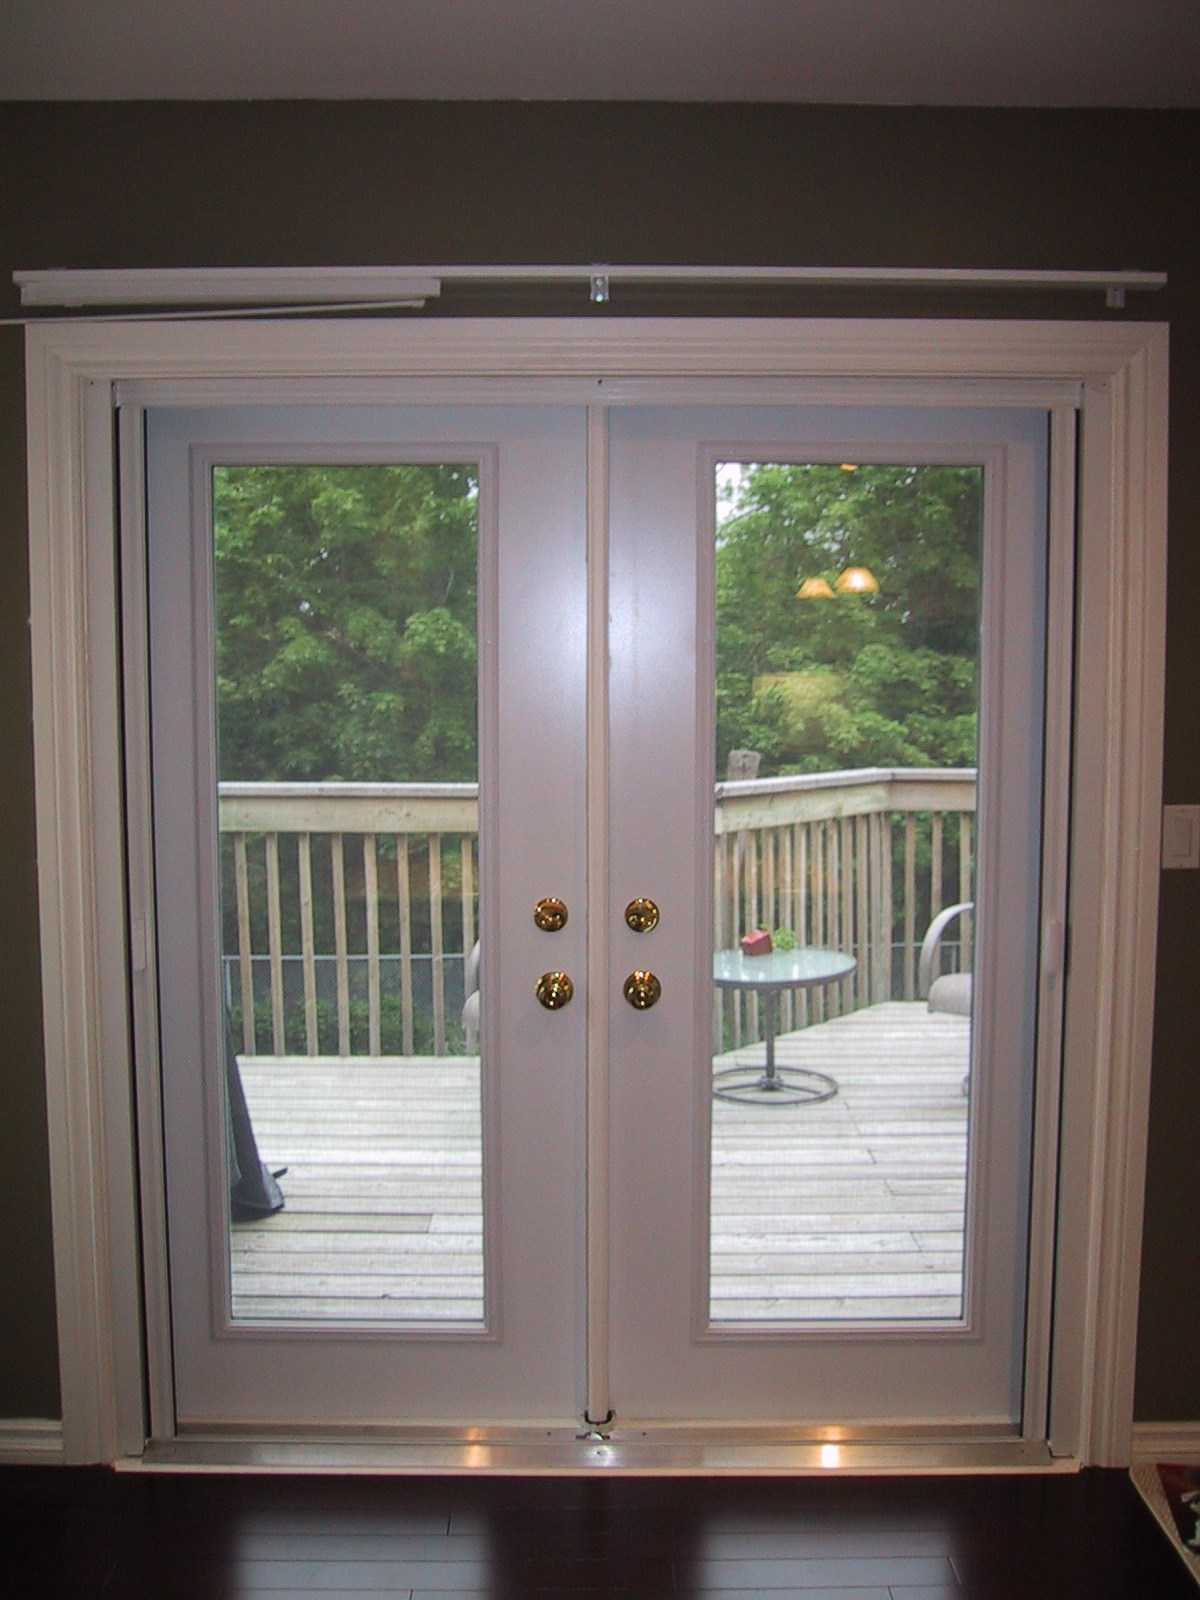 French Doors Home Depot | Home Depot French Door Fridge | Patio Doors Lowes